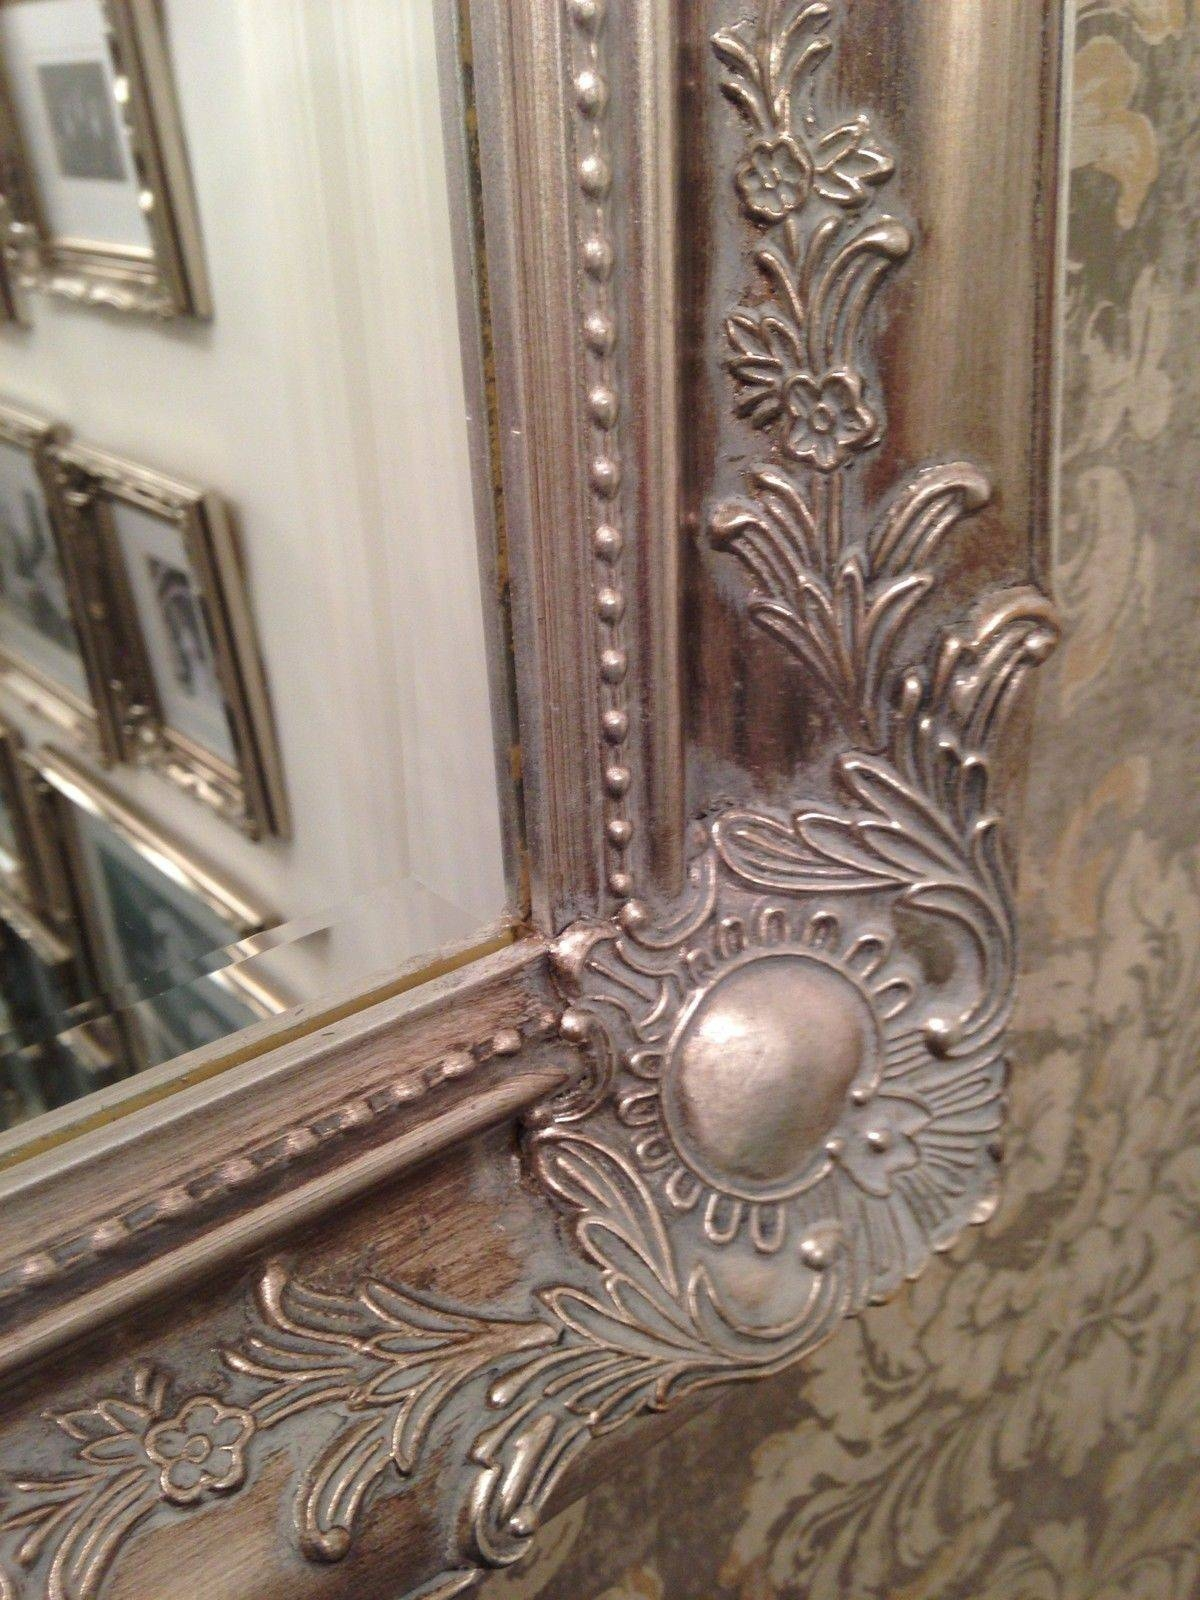 Ornate Silver Bathroom Mirror. Carved Ornate Framed Silver Wall intended for Large Ornate Mirrors For Wall (Image 22 of 25)